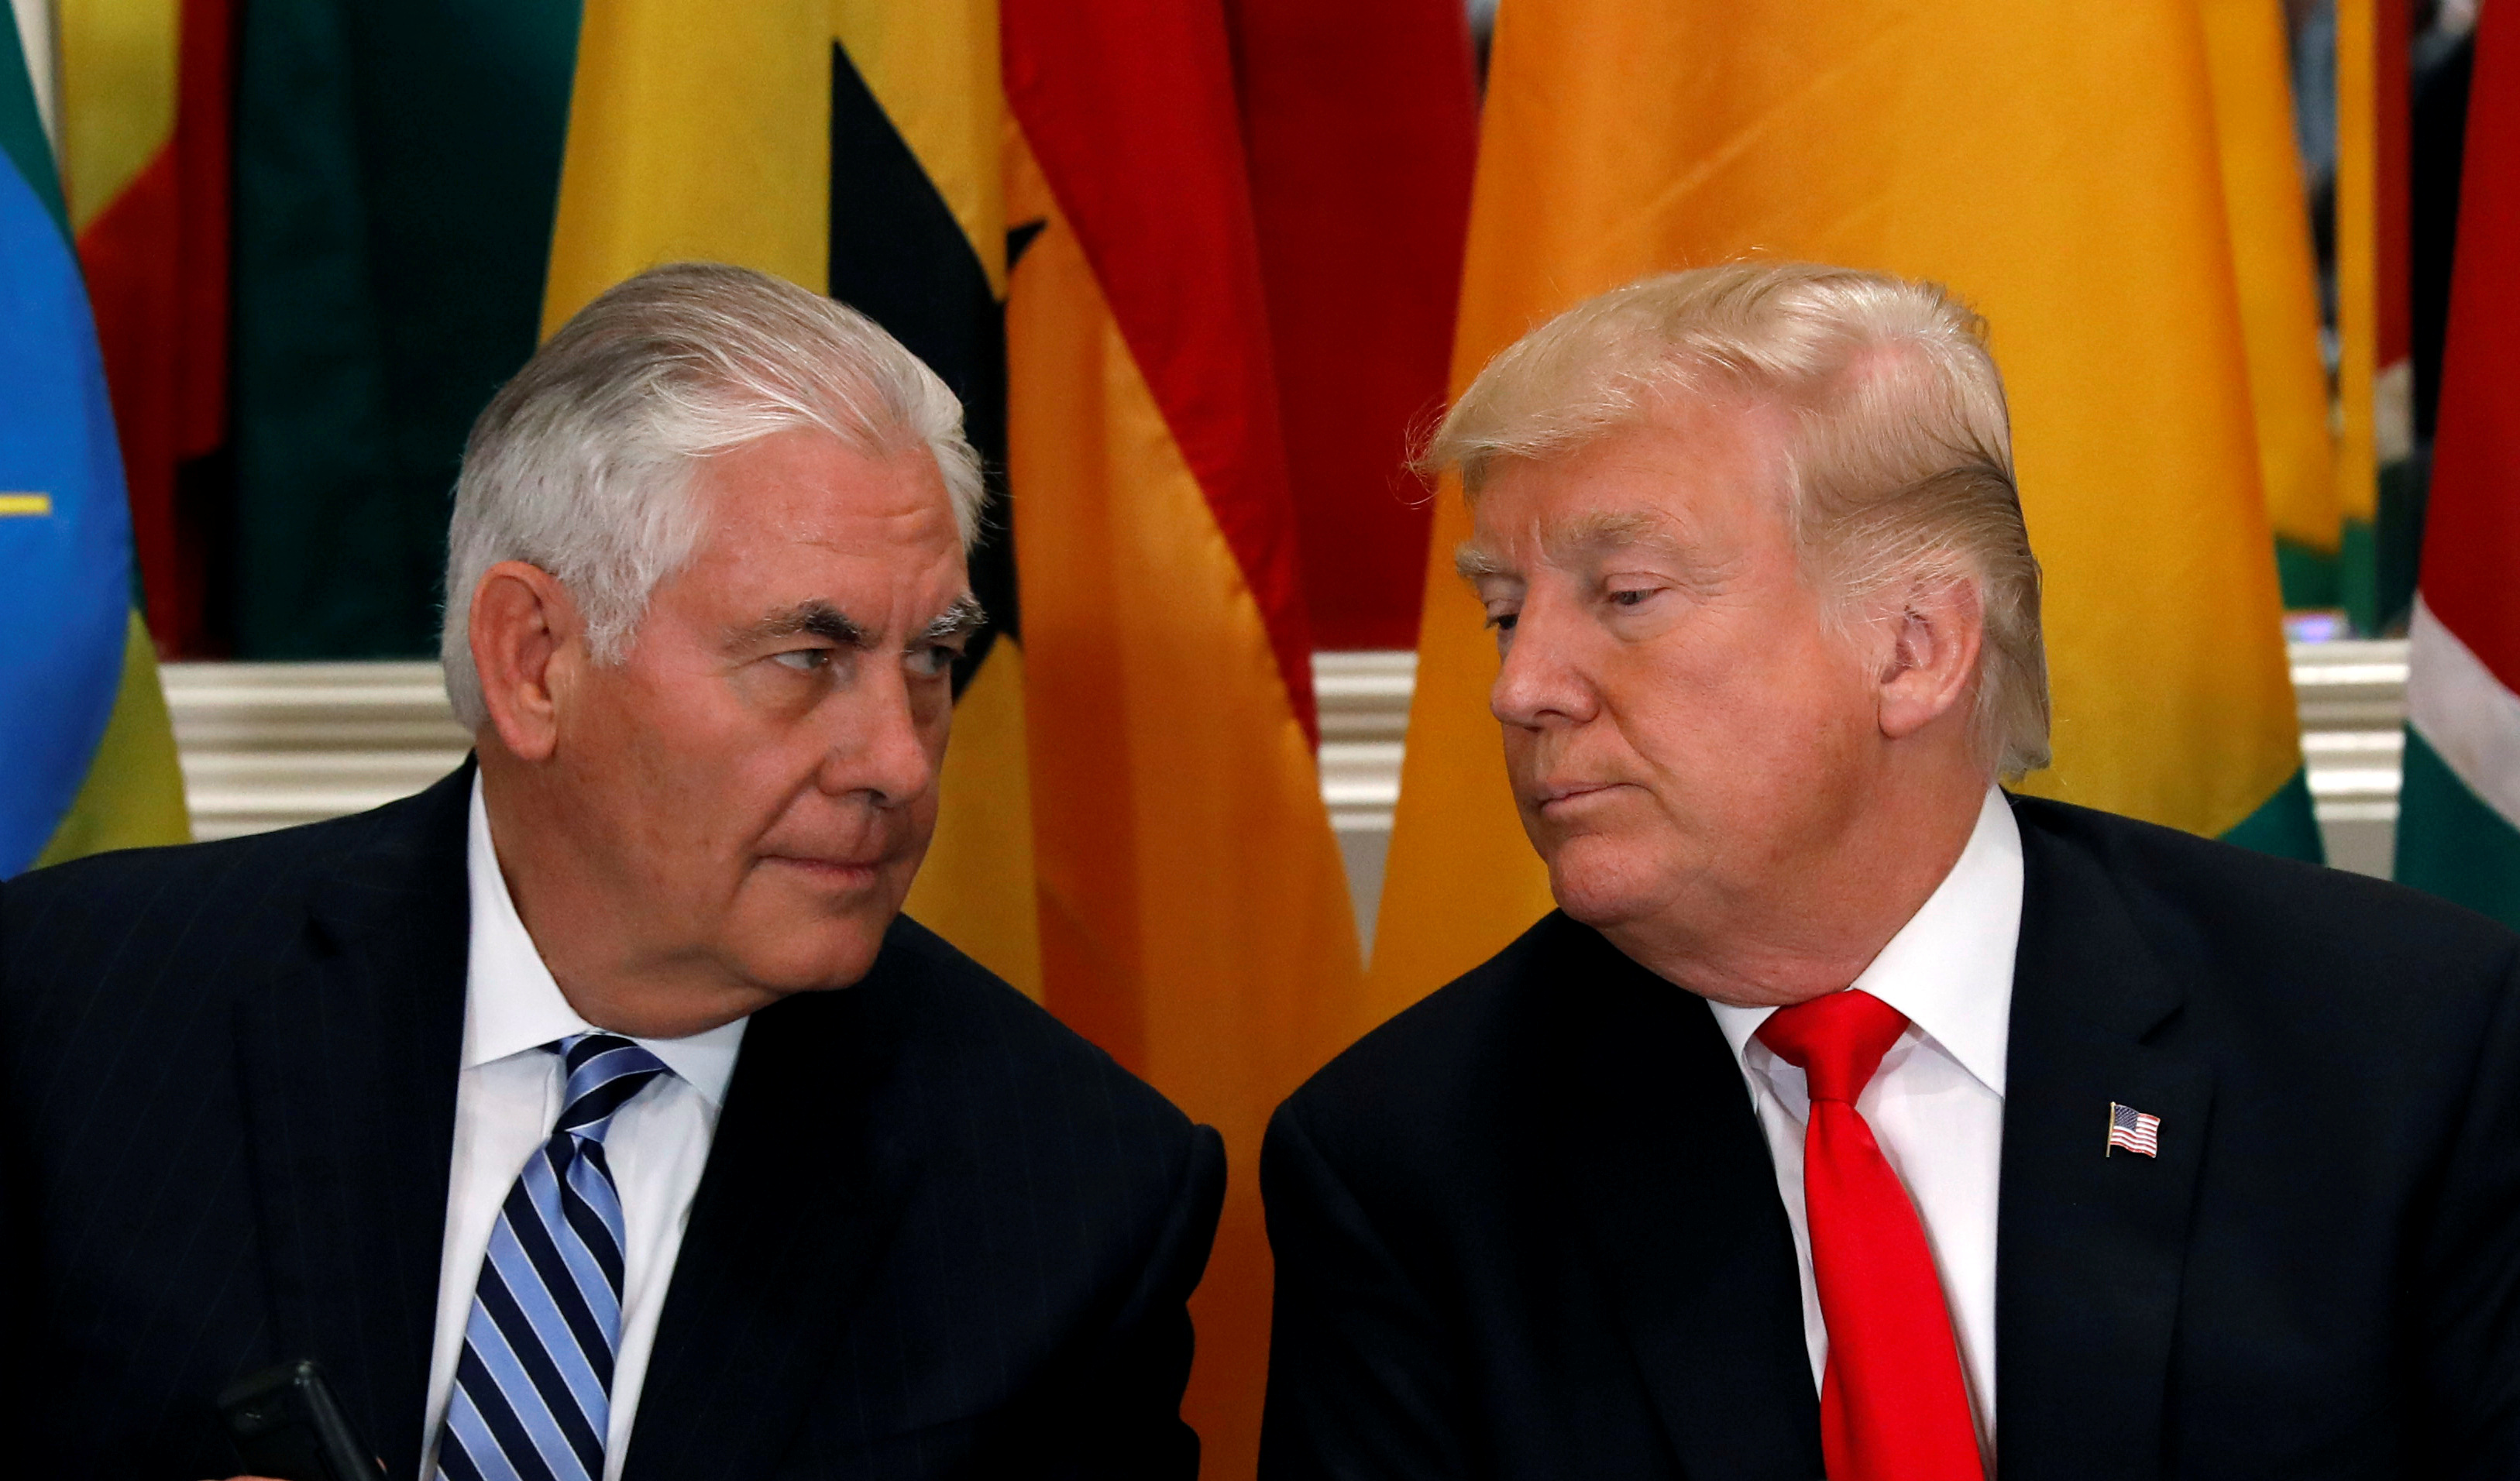 FILE PHOTO: U.S. President Donald Trump and Secretary of State Rex Tillerson confer during a working lunch in New York